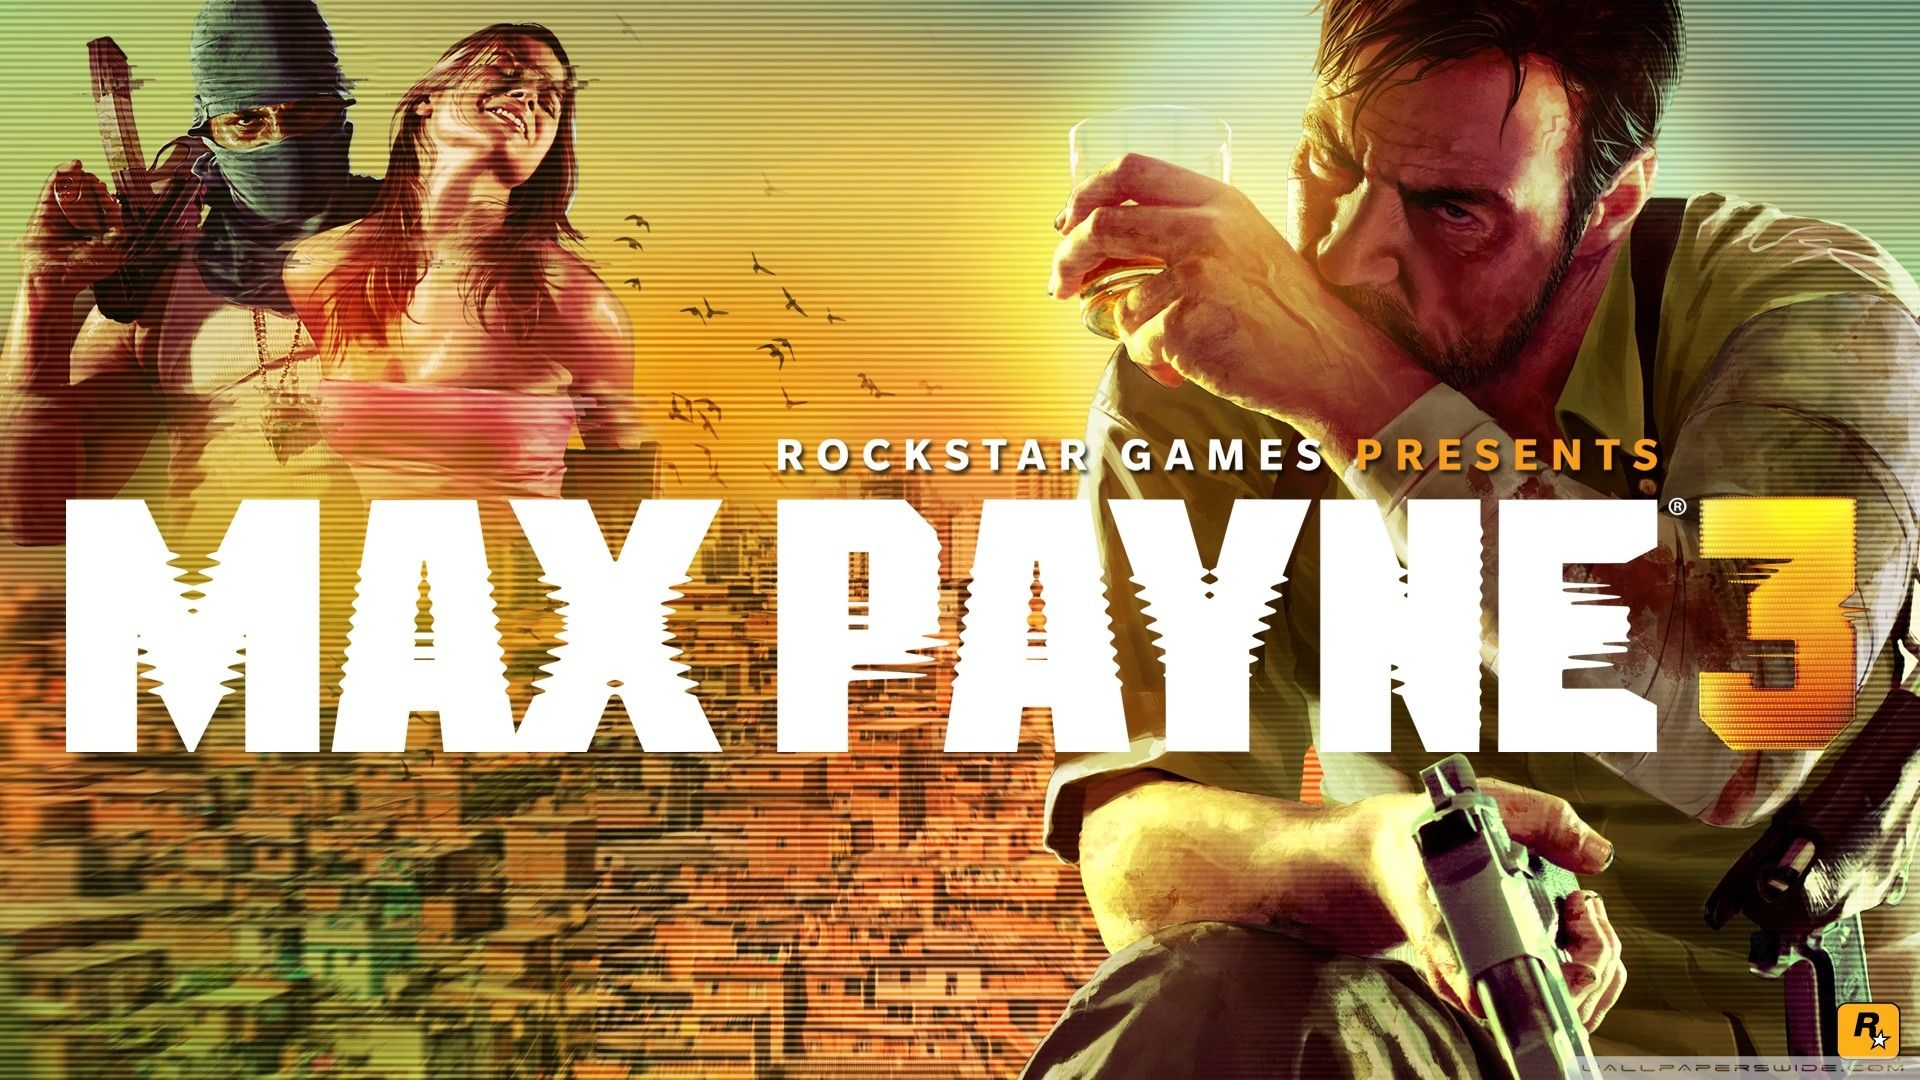 Max Payne 3 Wallpapers Top Free Max Payne 3 Backgrounds